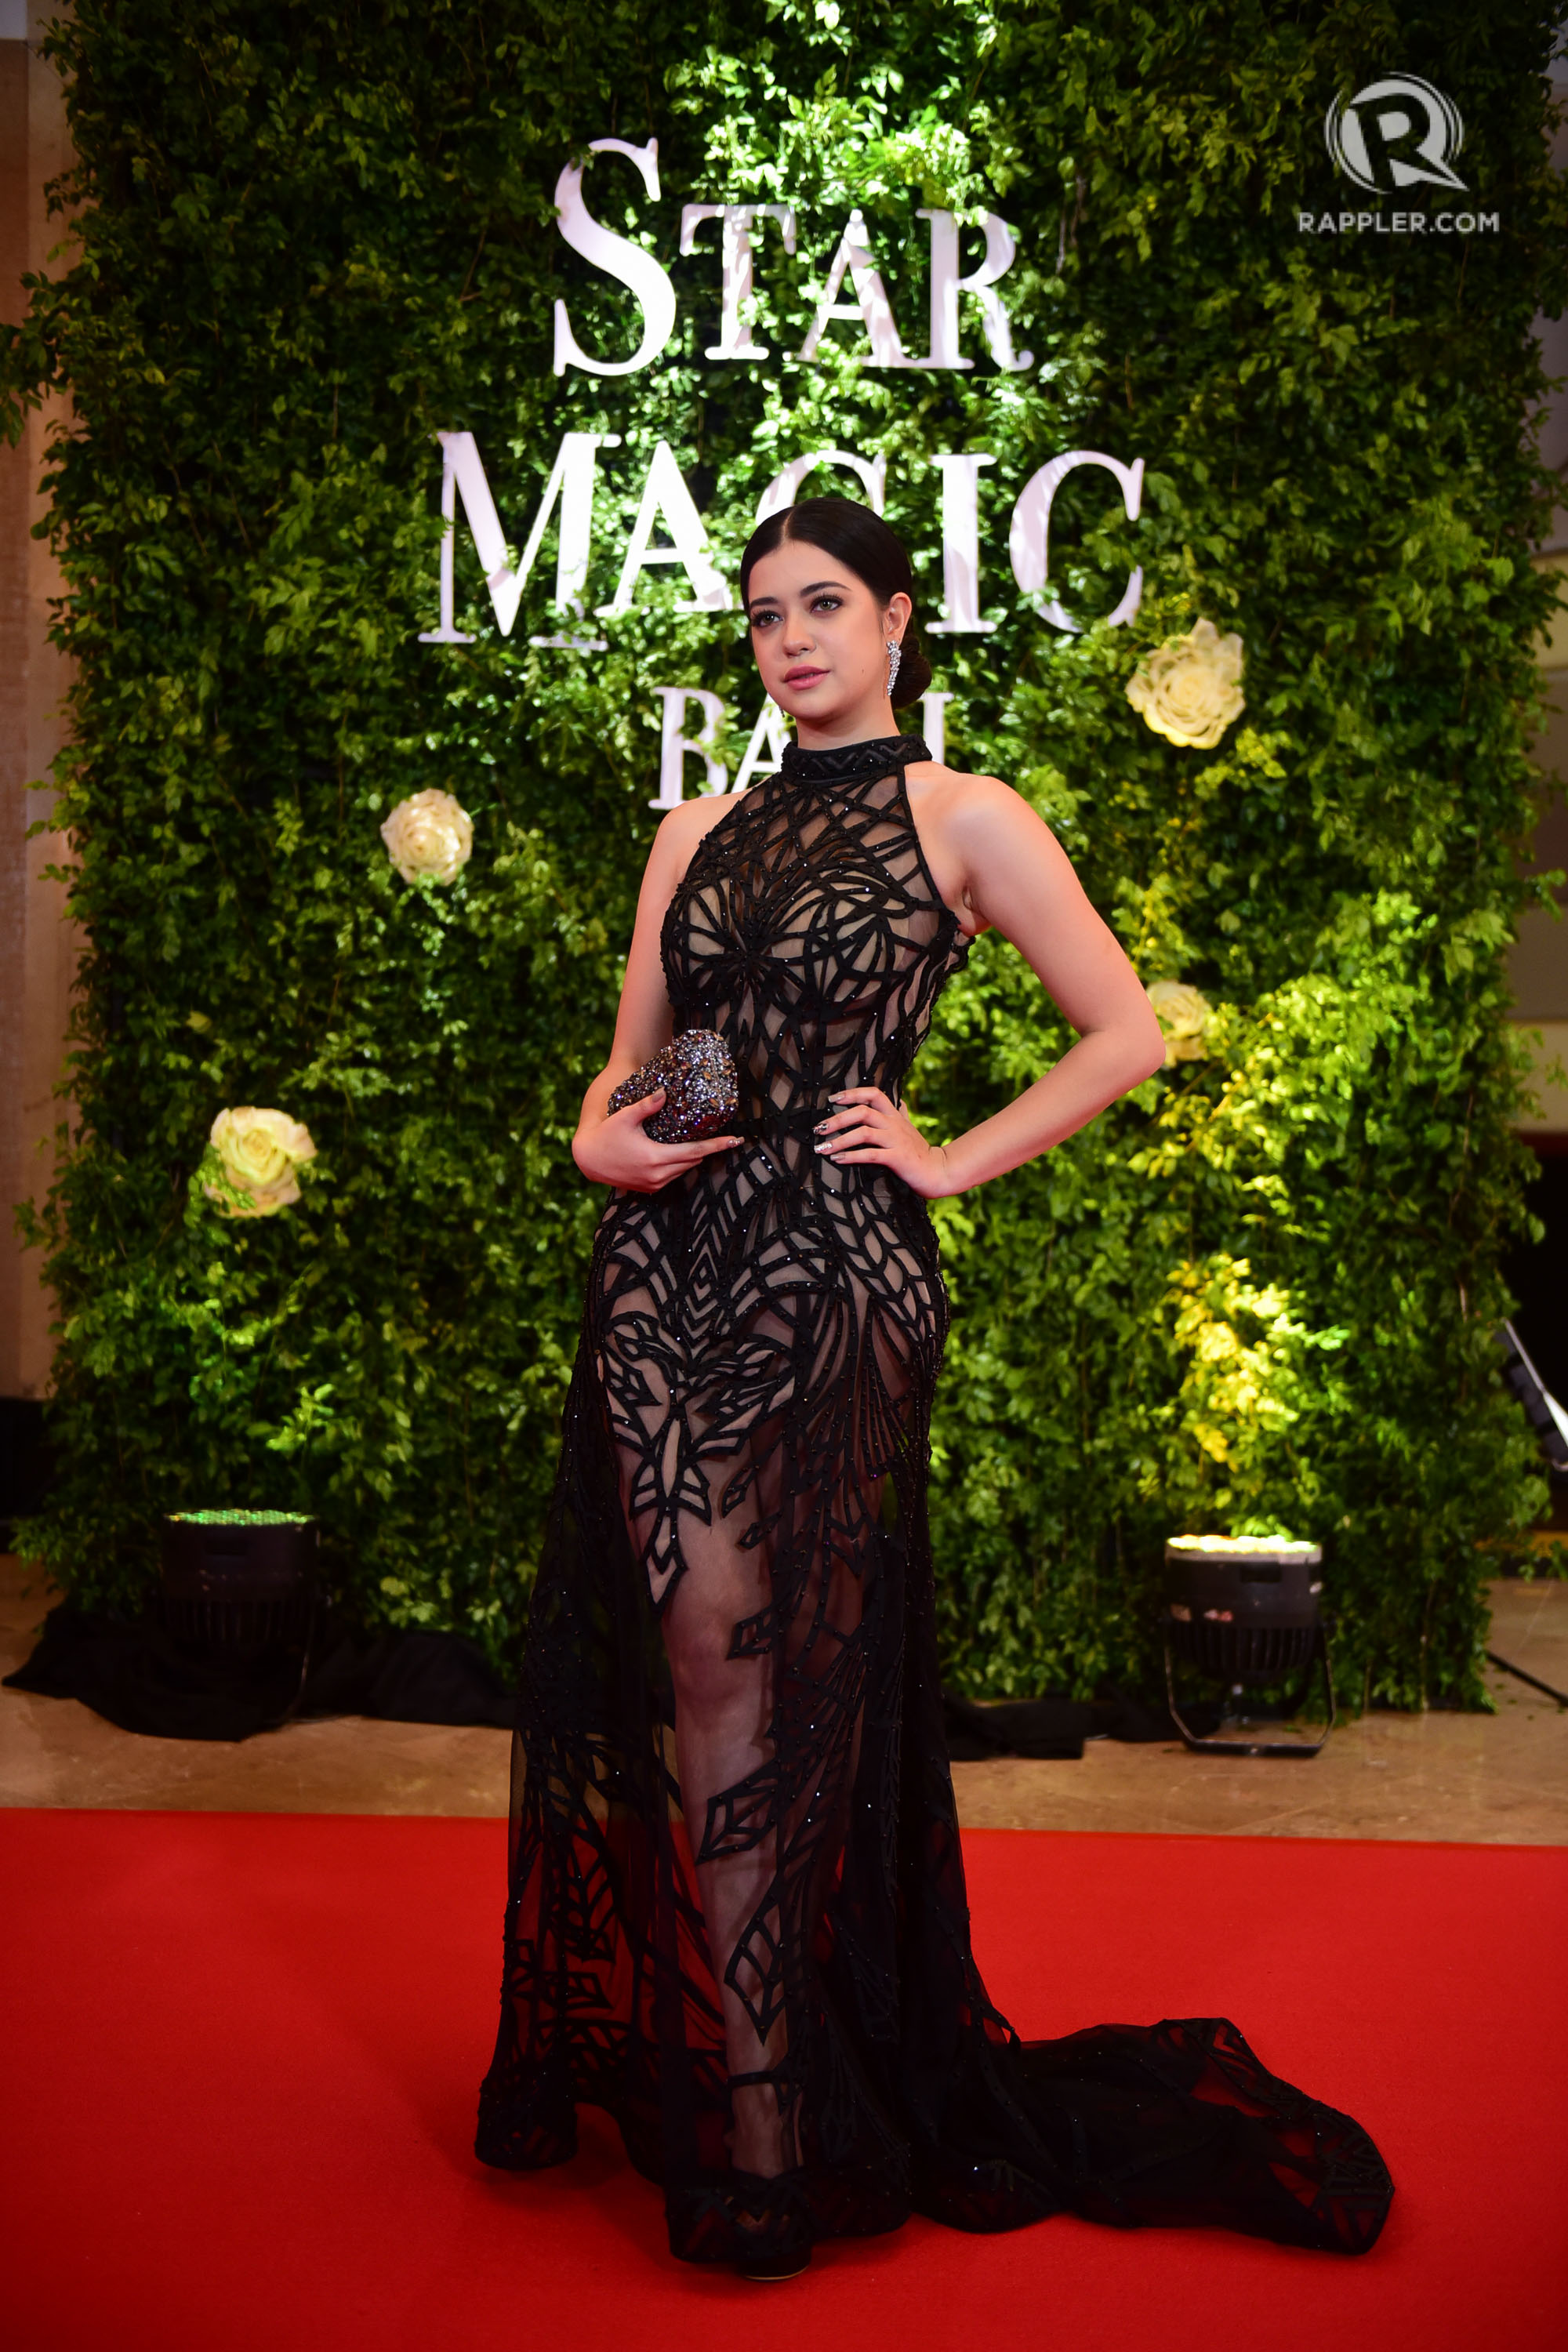 Star Magic Ball 2017: Fashion Review